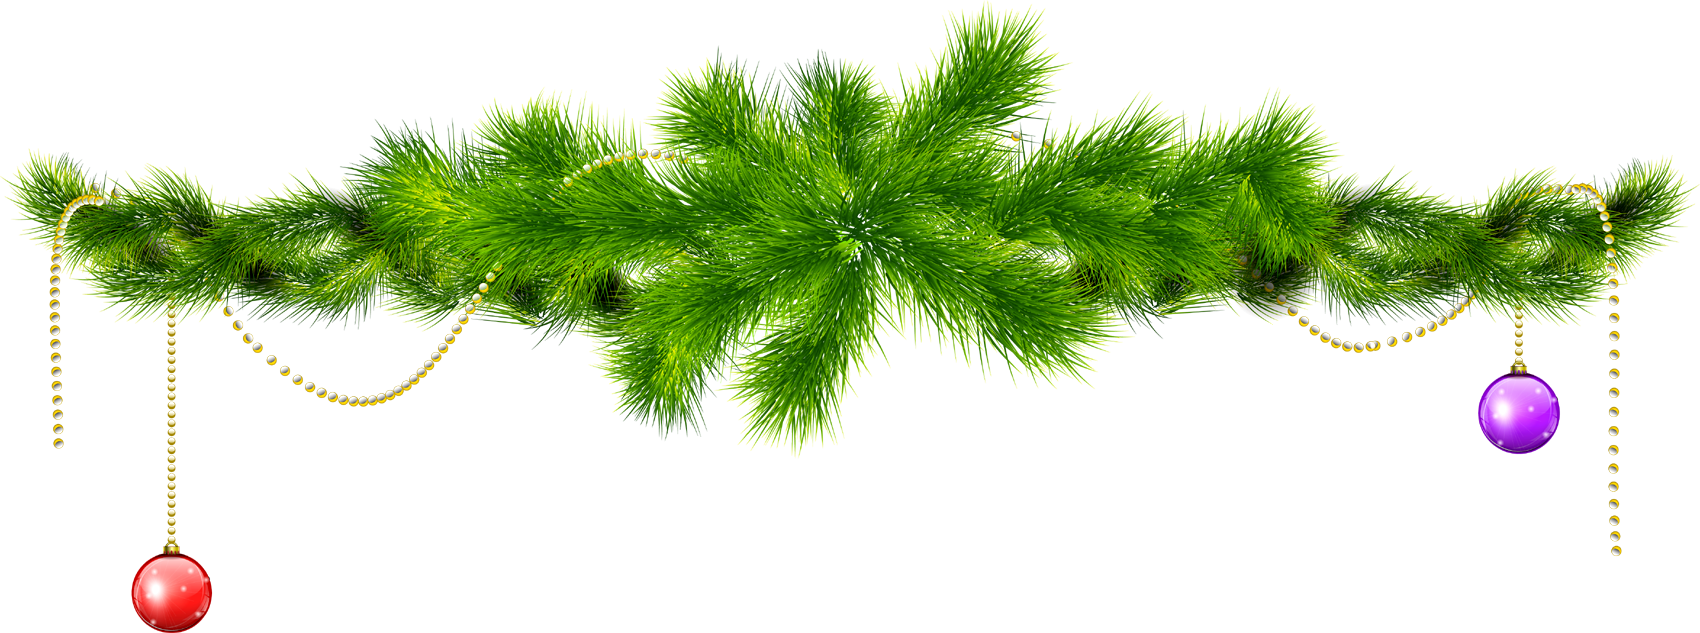 Christmas pine png. Holly images free download